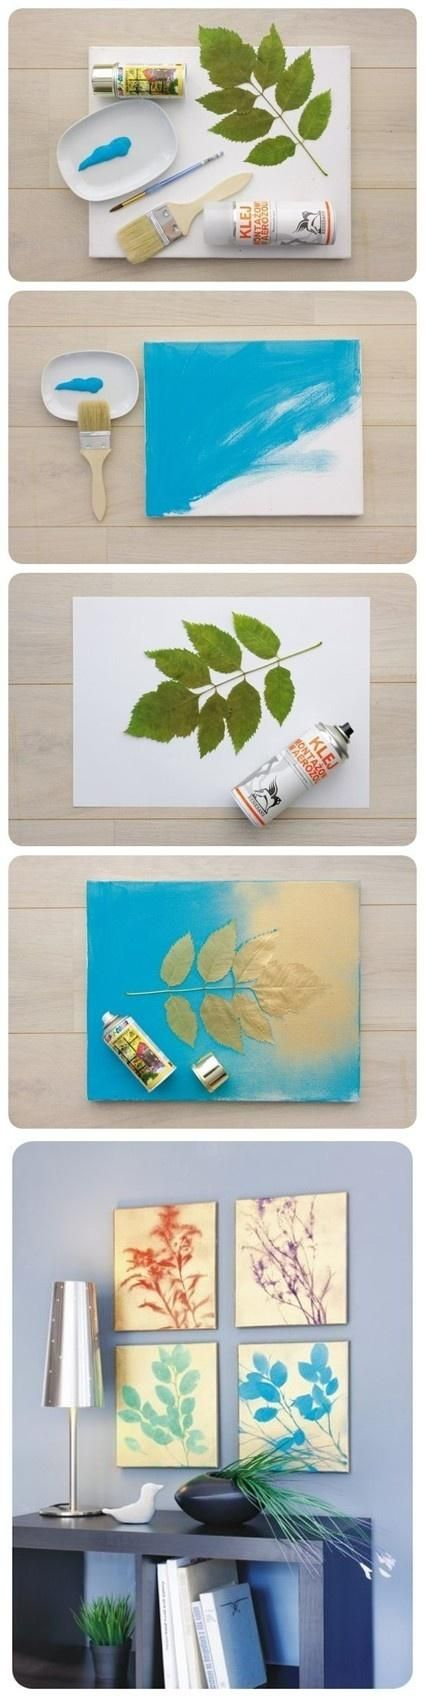 DIY Spray paint plant pictures